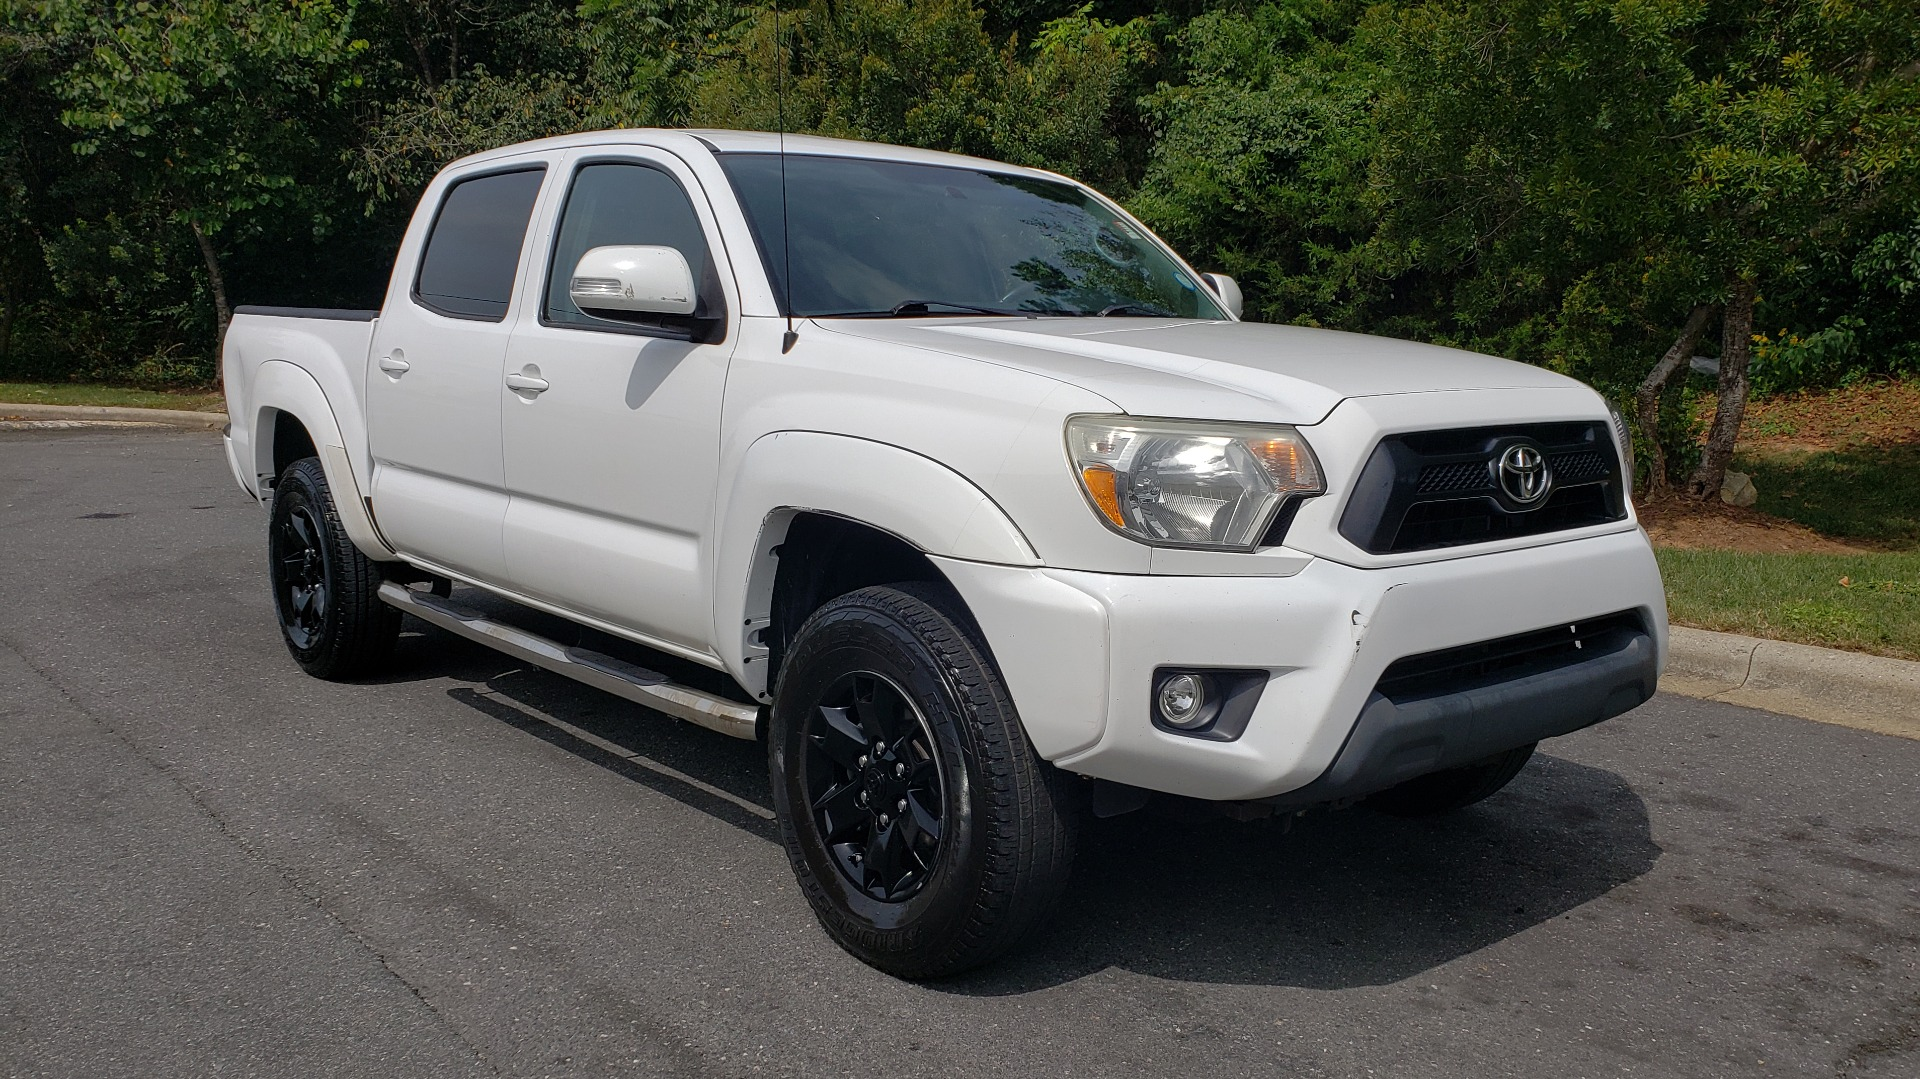 Used 2015 Toyota TACOMA PRERUNNER DOUBLE CAB/ 4-CYL / 4-SPD AUTO / SR PKG / CONV PKG for sale $15,995 at Formula Imports in Charlotte NC 28227 4